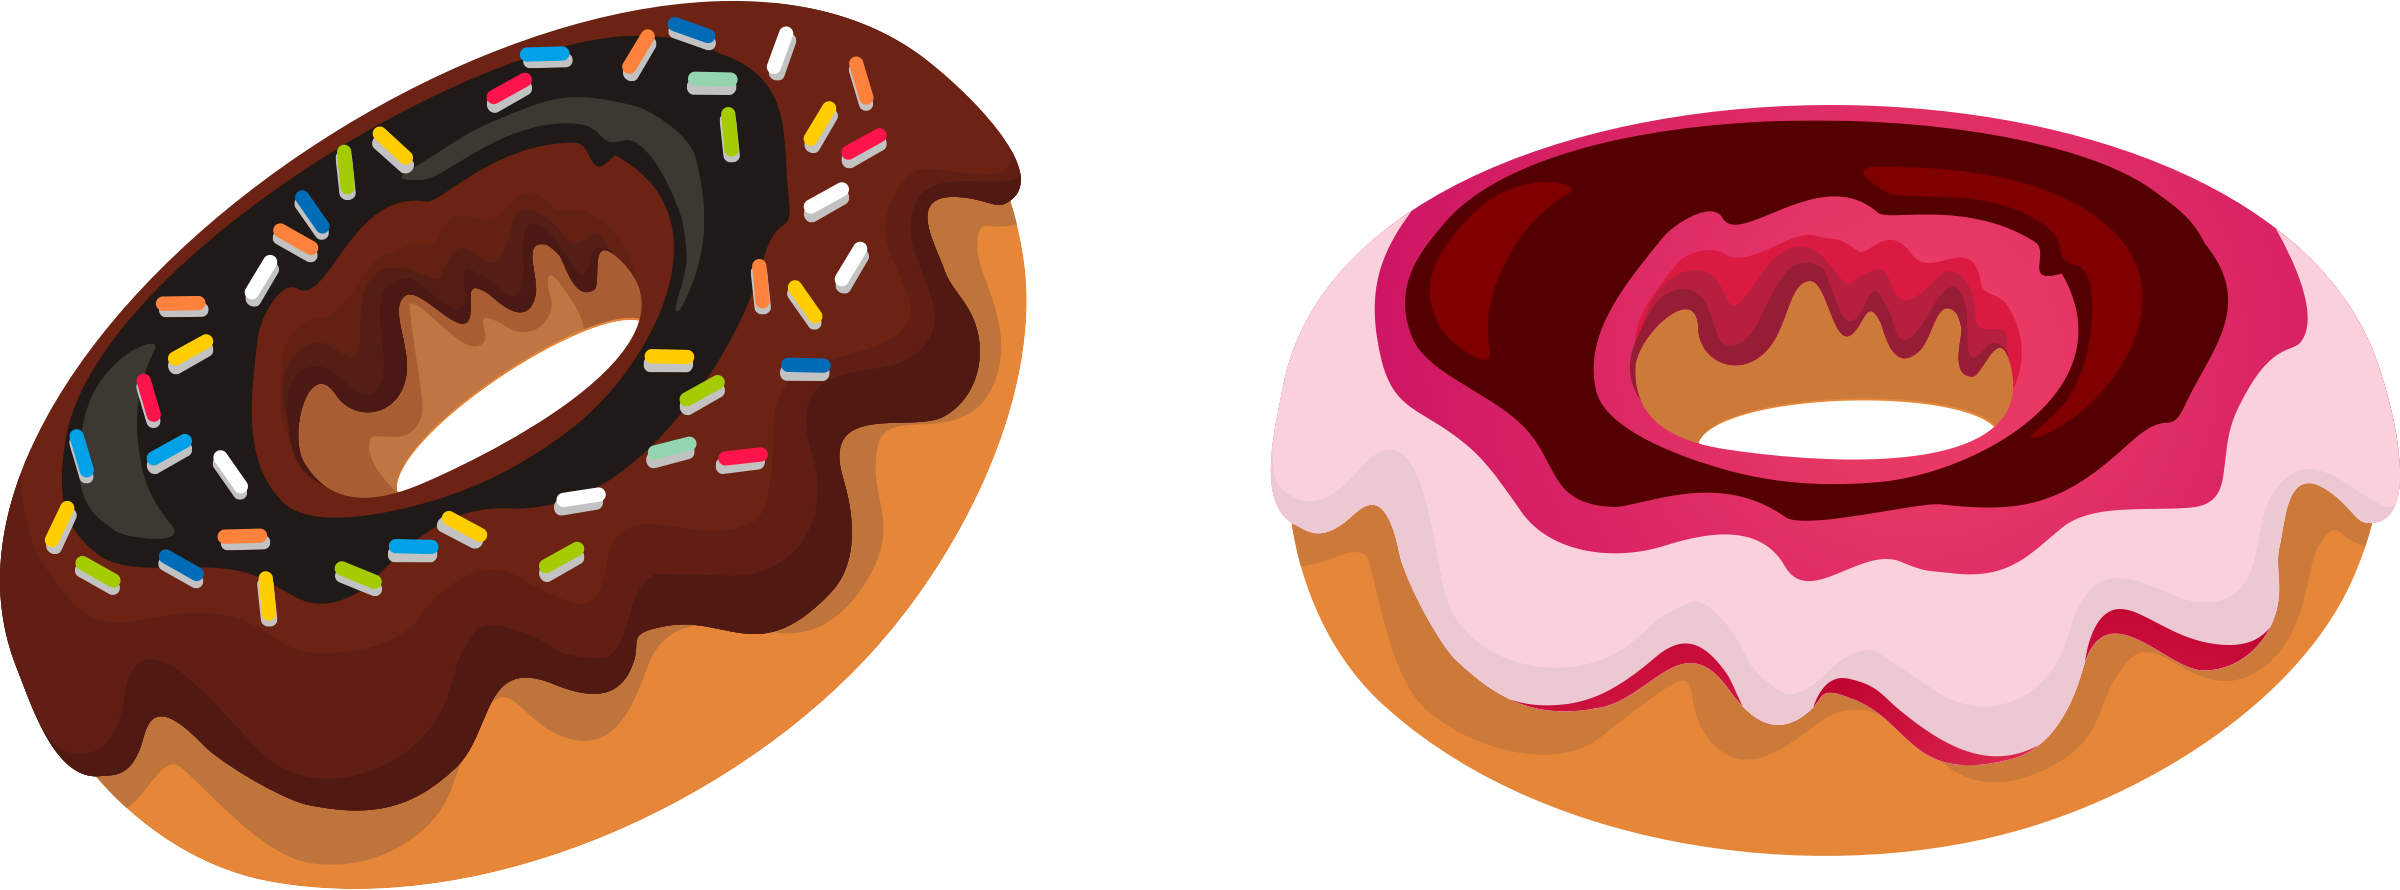 Donut border clipart free clip art images